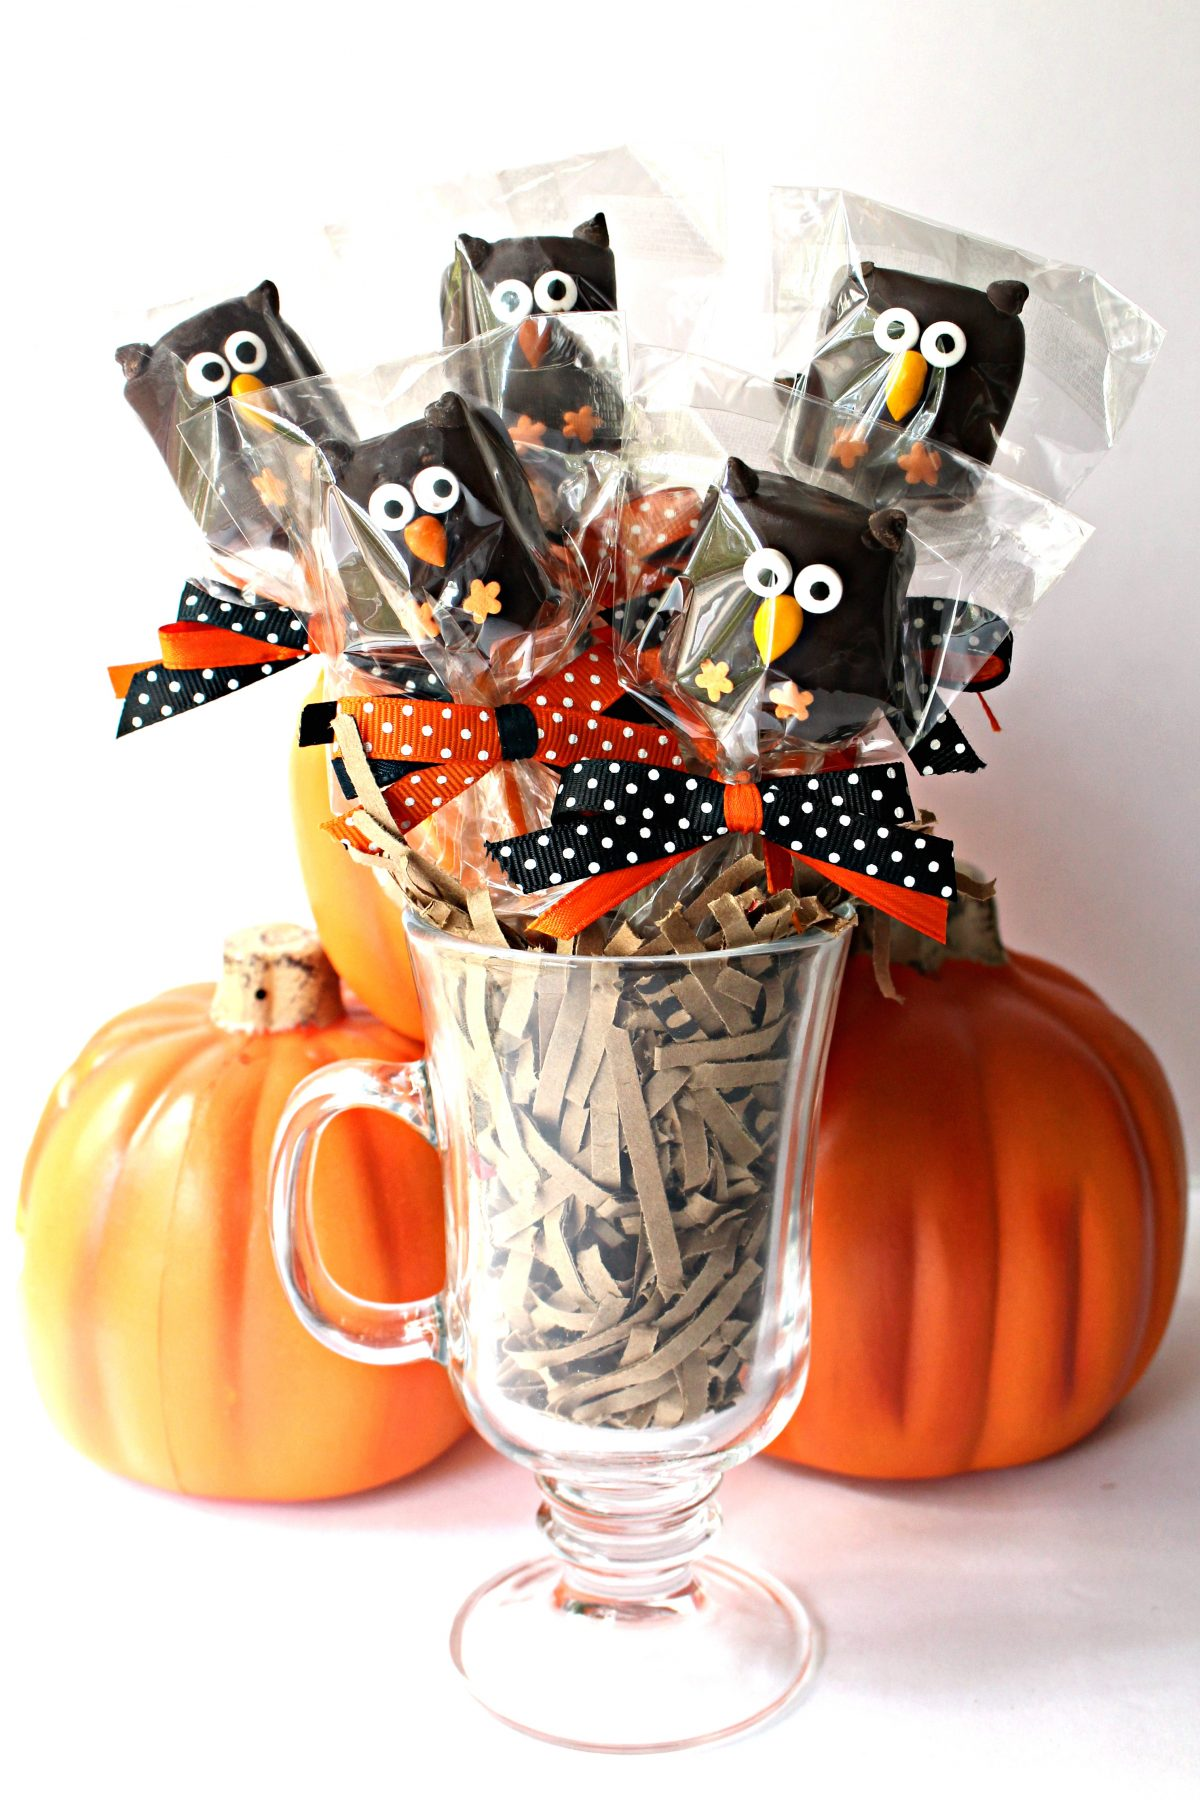 Owl Marshmallow Pops, in plastic bags with polka dot bows, in a glass mug centerpiece.